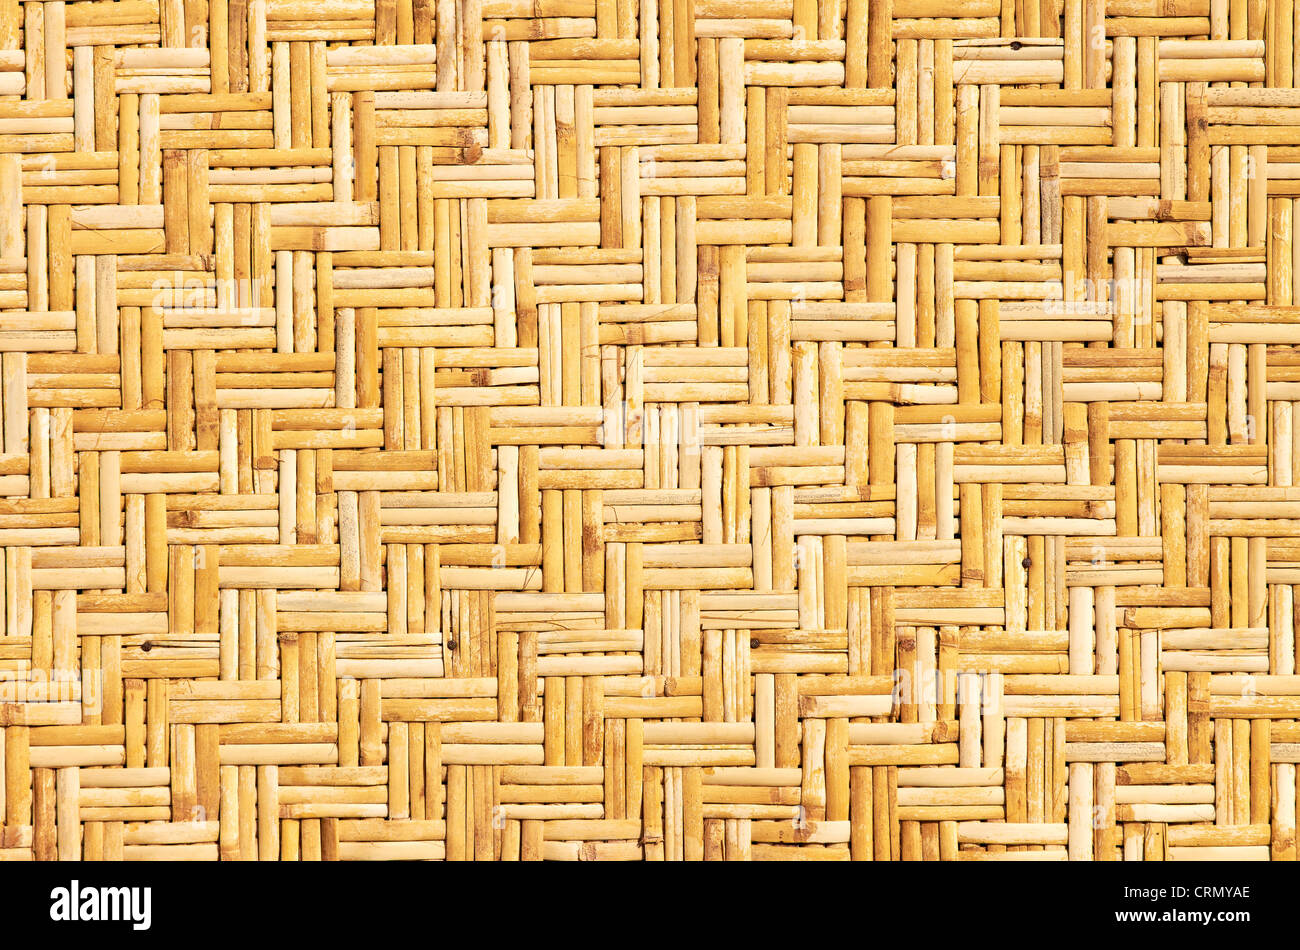 Weaved straws of palm leaves as horizontal background Stock Photo